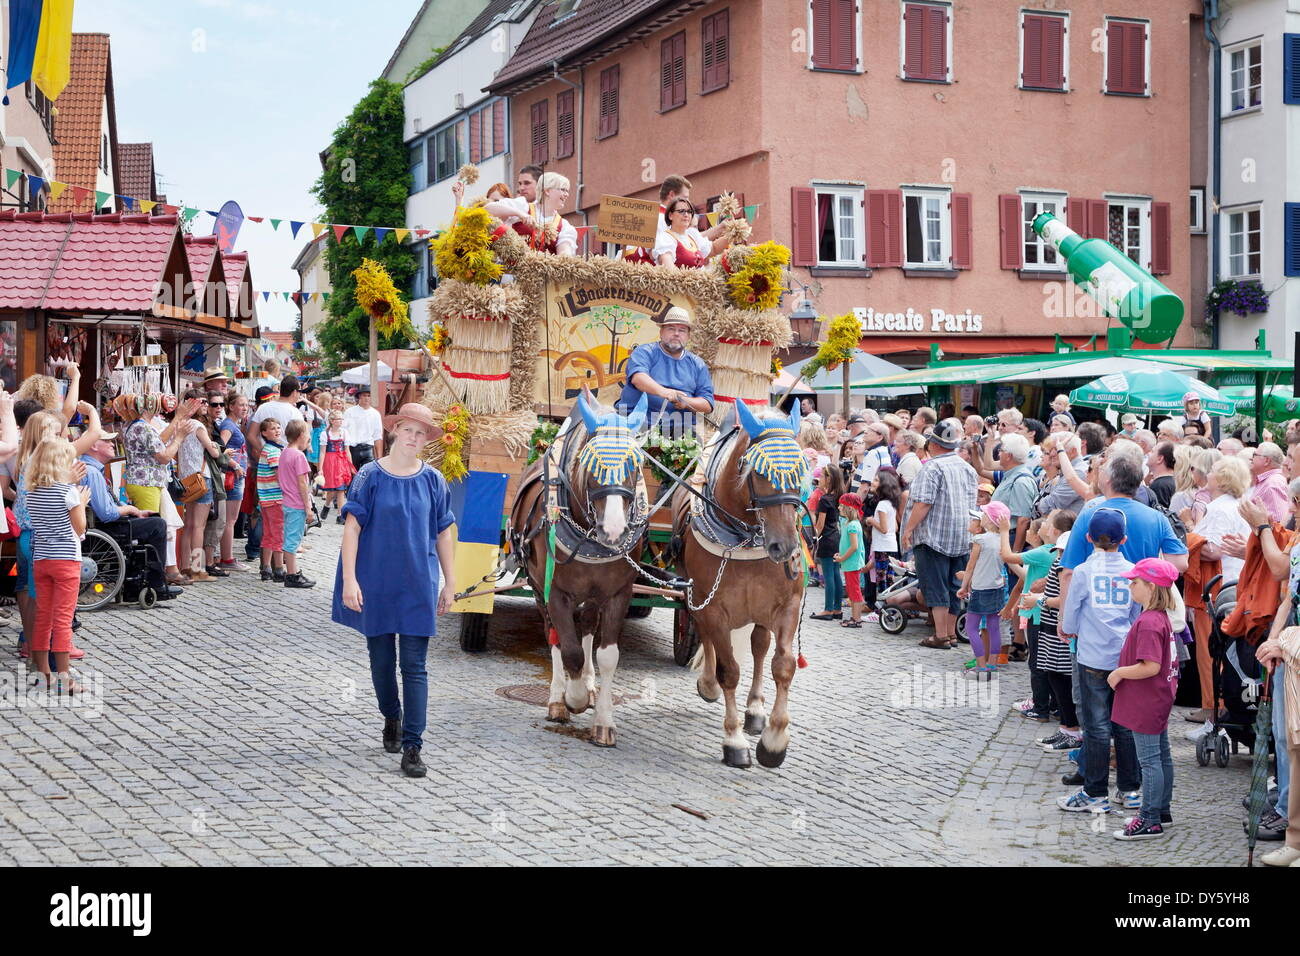 Float parade germany stock photos float parade germany - Mobelhaus schafer dusseldorf ...